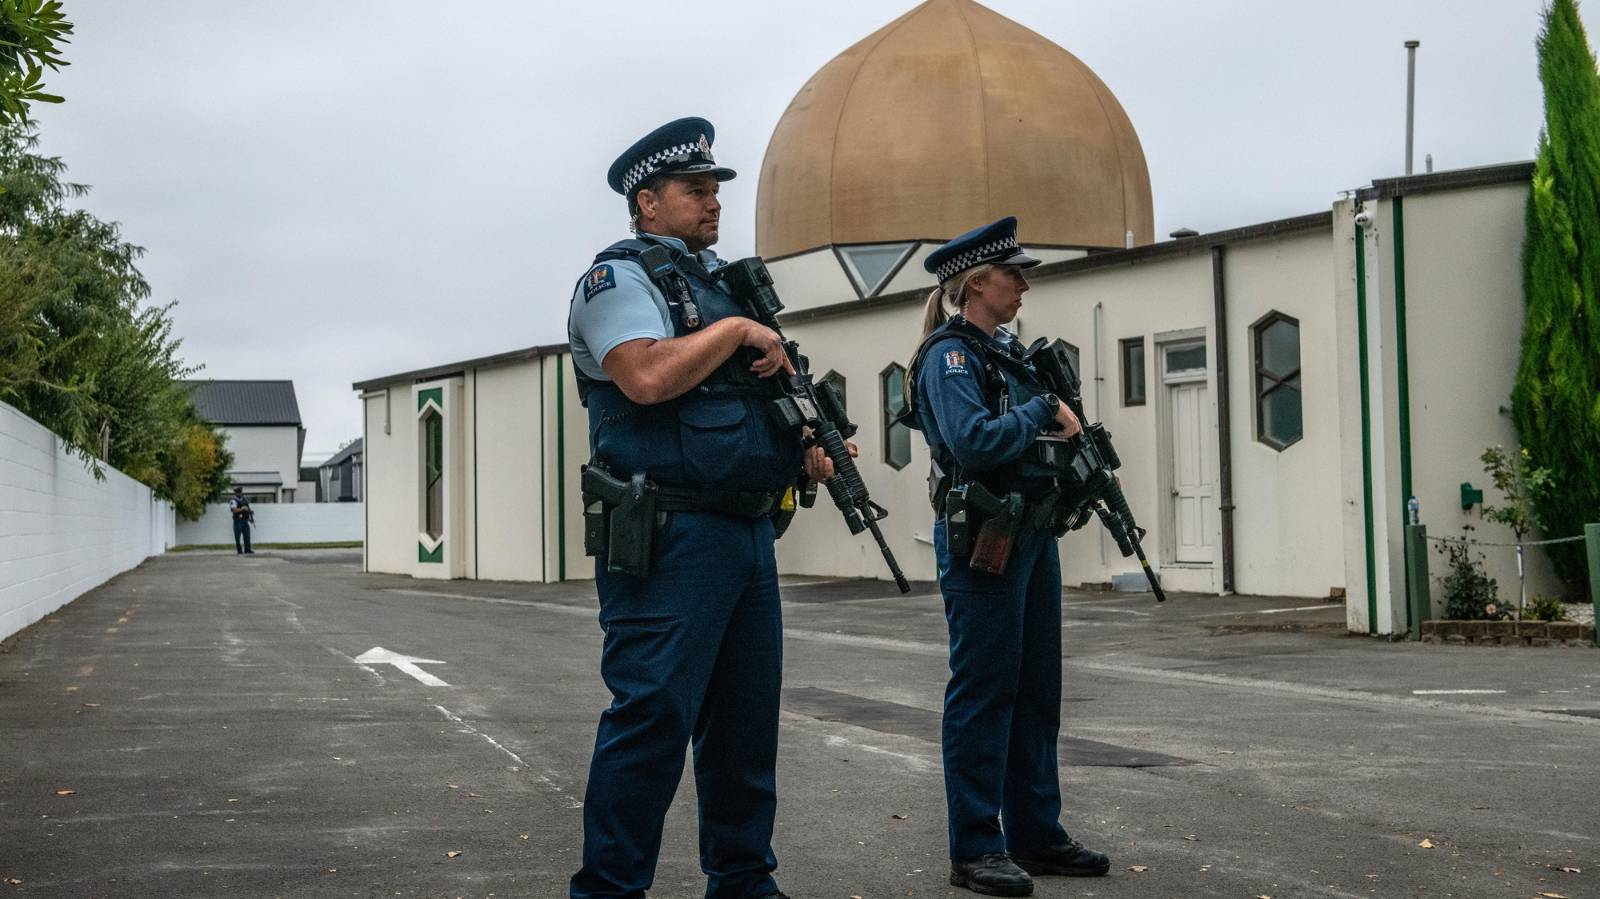 NZ's role in challenging violent extremism